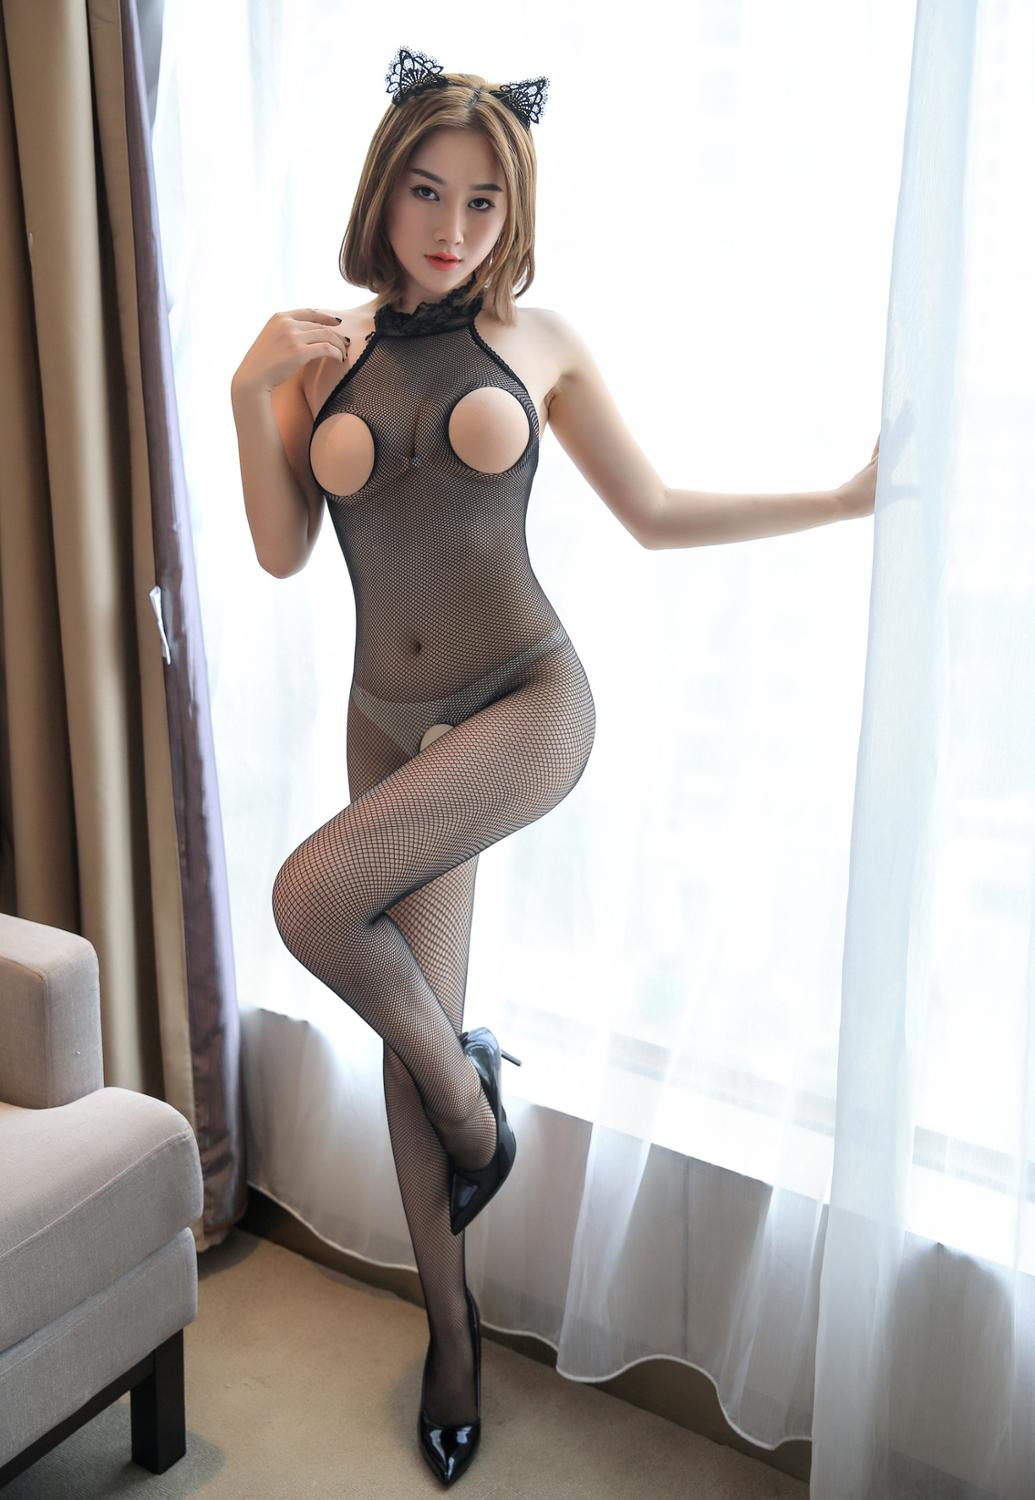 Sexy Costume Women's Large Size Sexy Lingerie Open File Uniform Temptation Siamese Mesh Stockings For Hot Girls Sexy Clothing